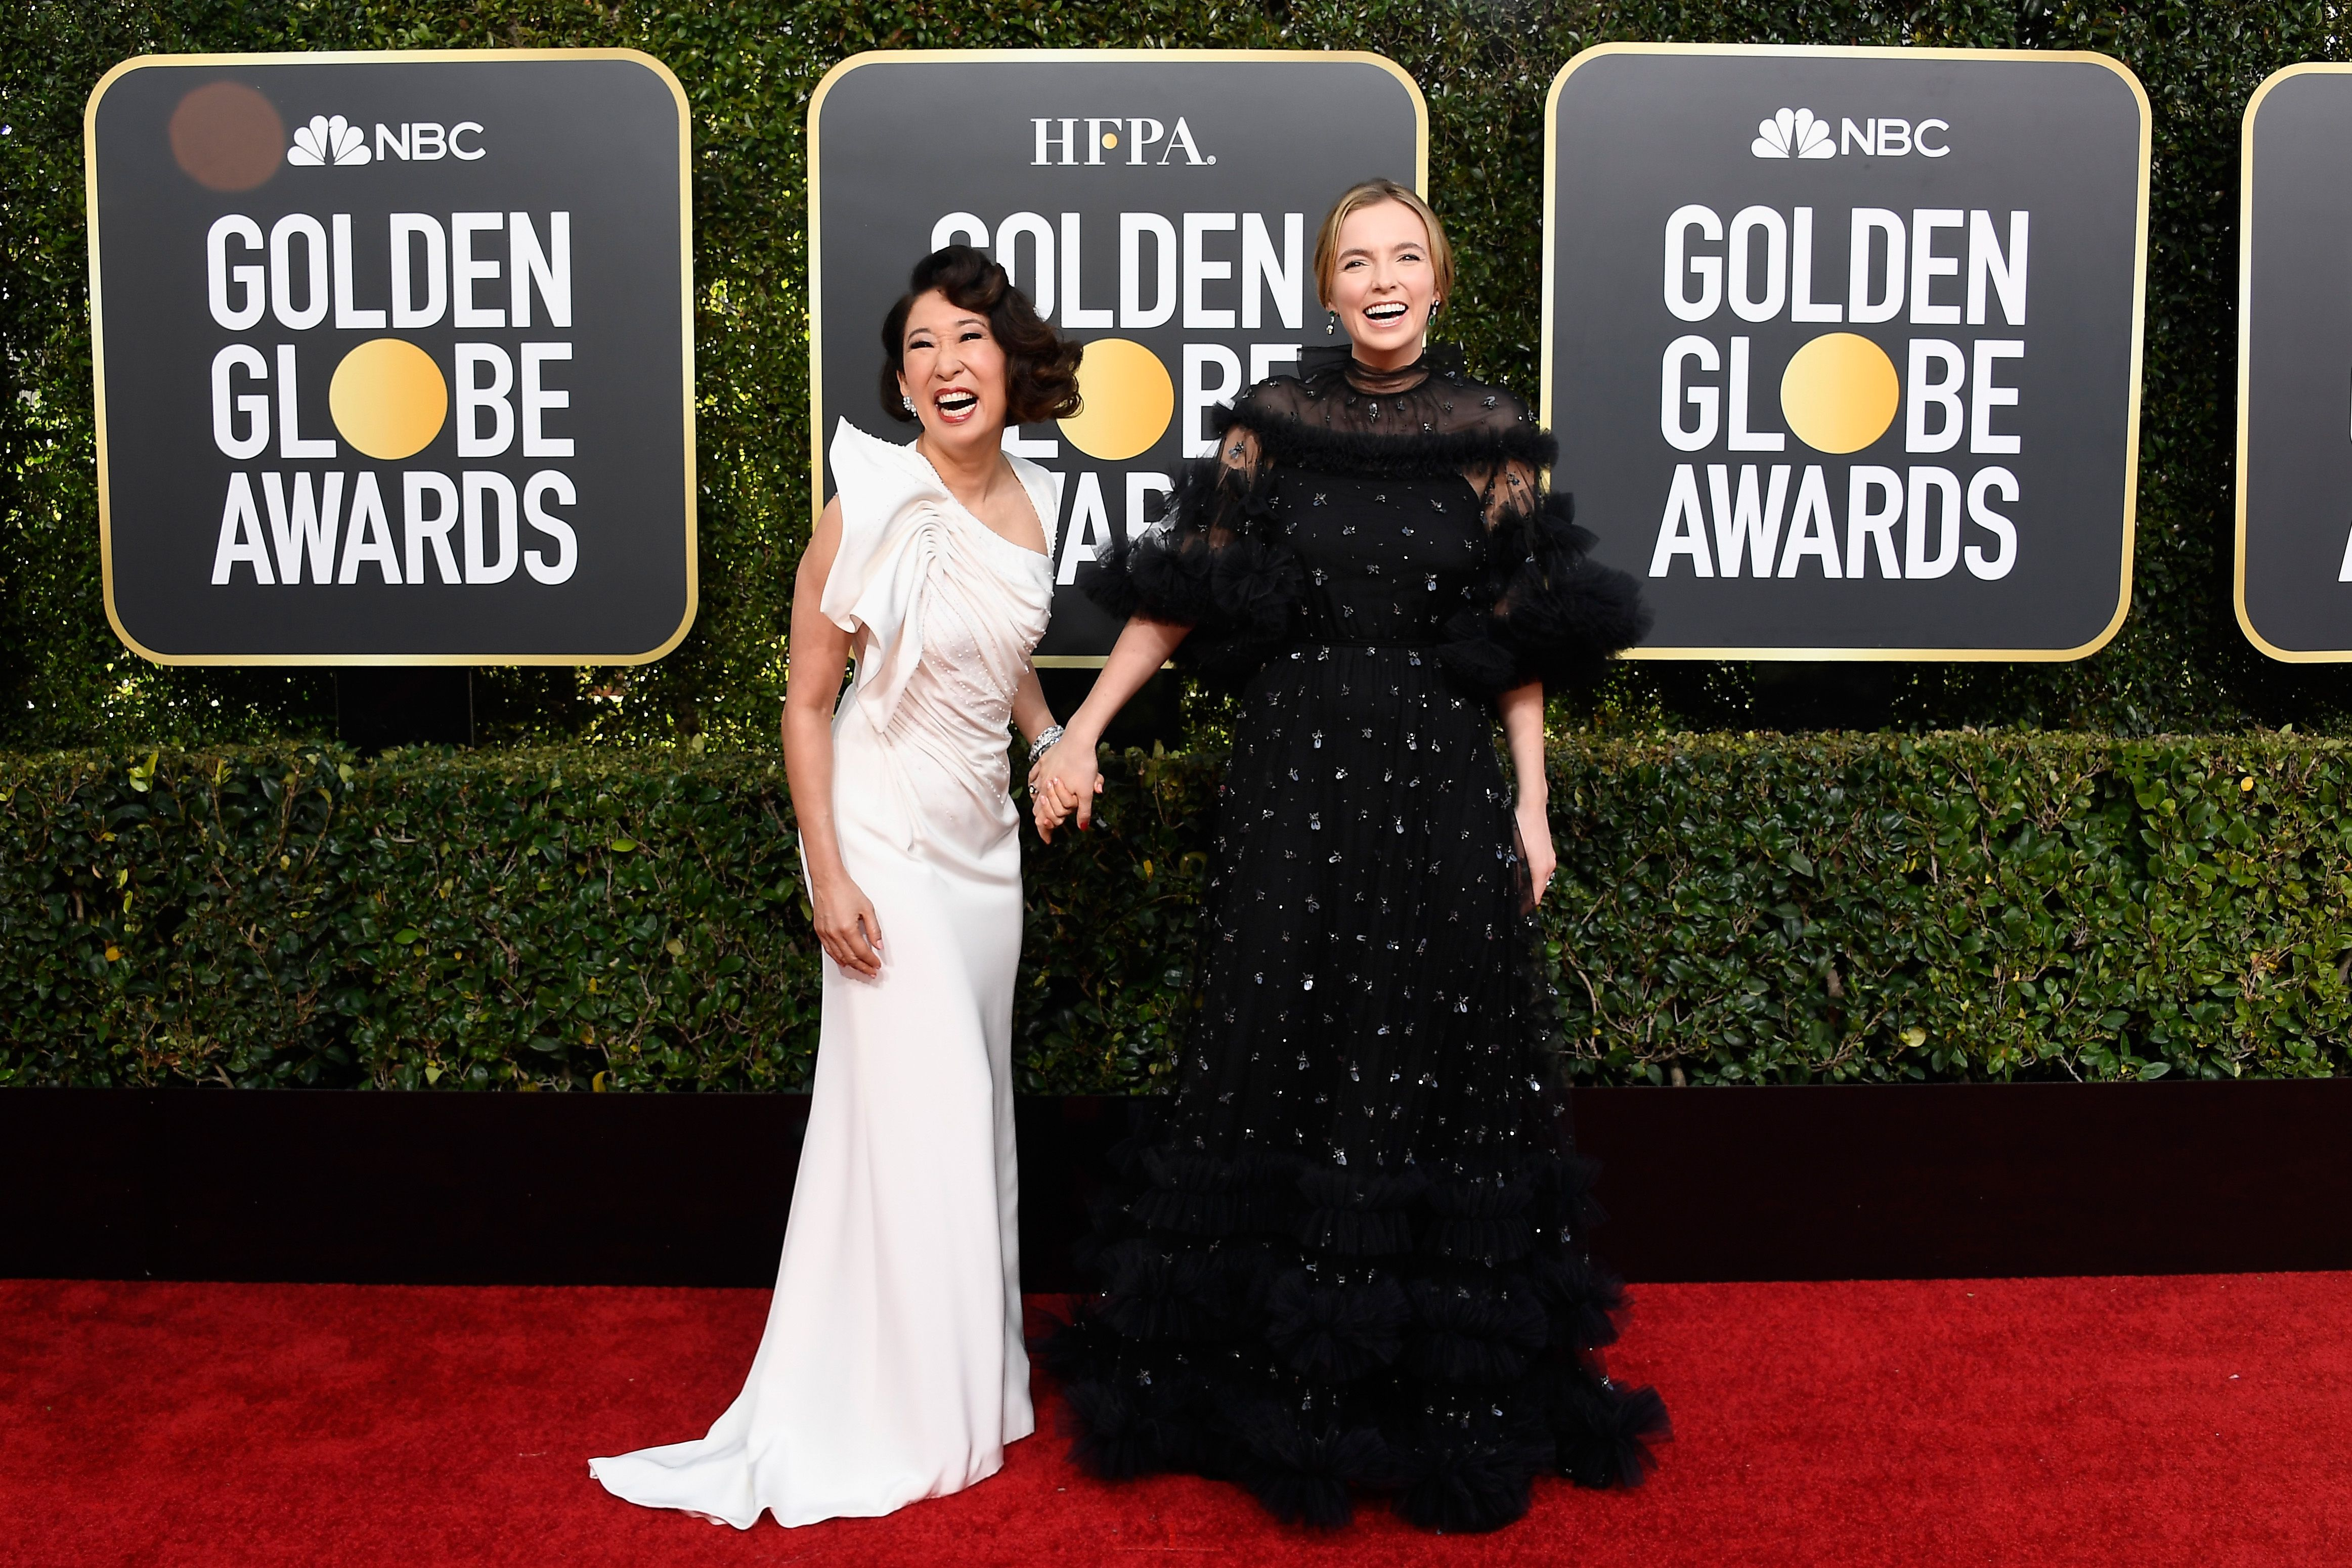 Oh and Comer at the 2019 Golden Globes.